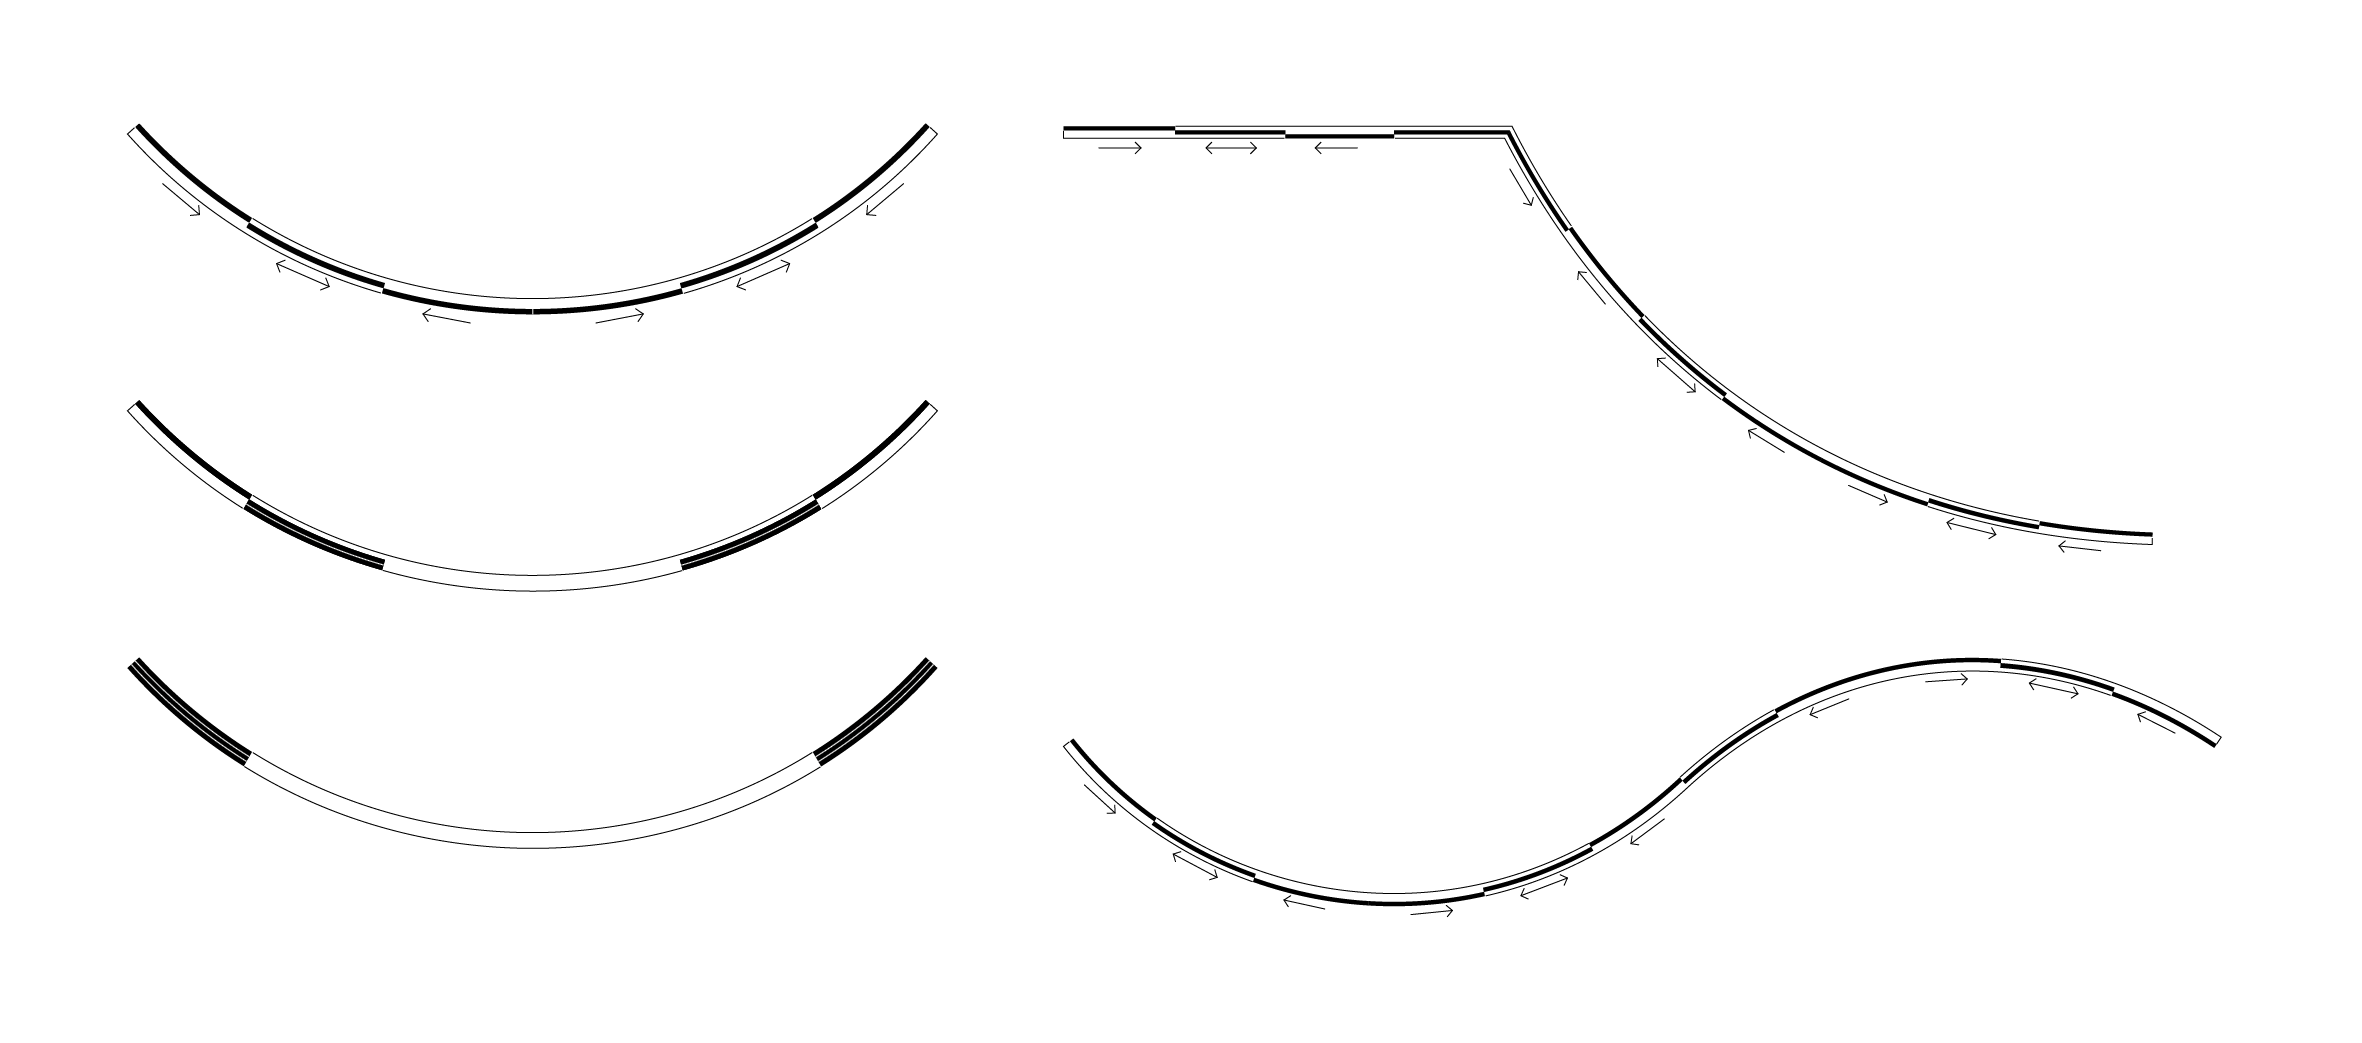 Technical Drawing Sky Frame Arc.png 2362x1043 Q90 Subsampling 2